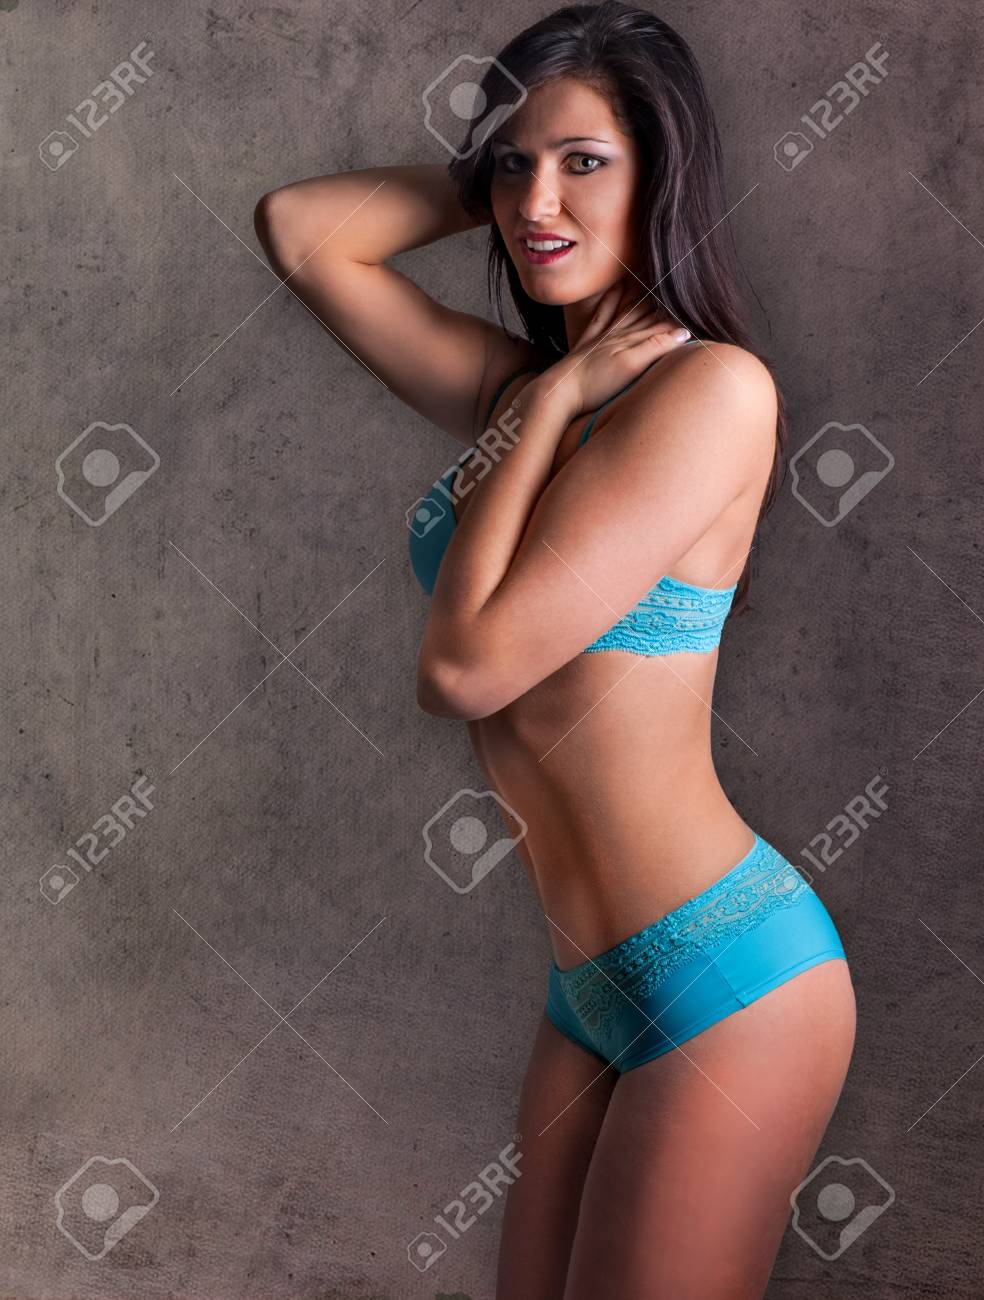 d87df74f13 Fitness girl wearing sexy blue underwear stock photo picture jpg 984x1300 Blue  lingerie models fitness